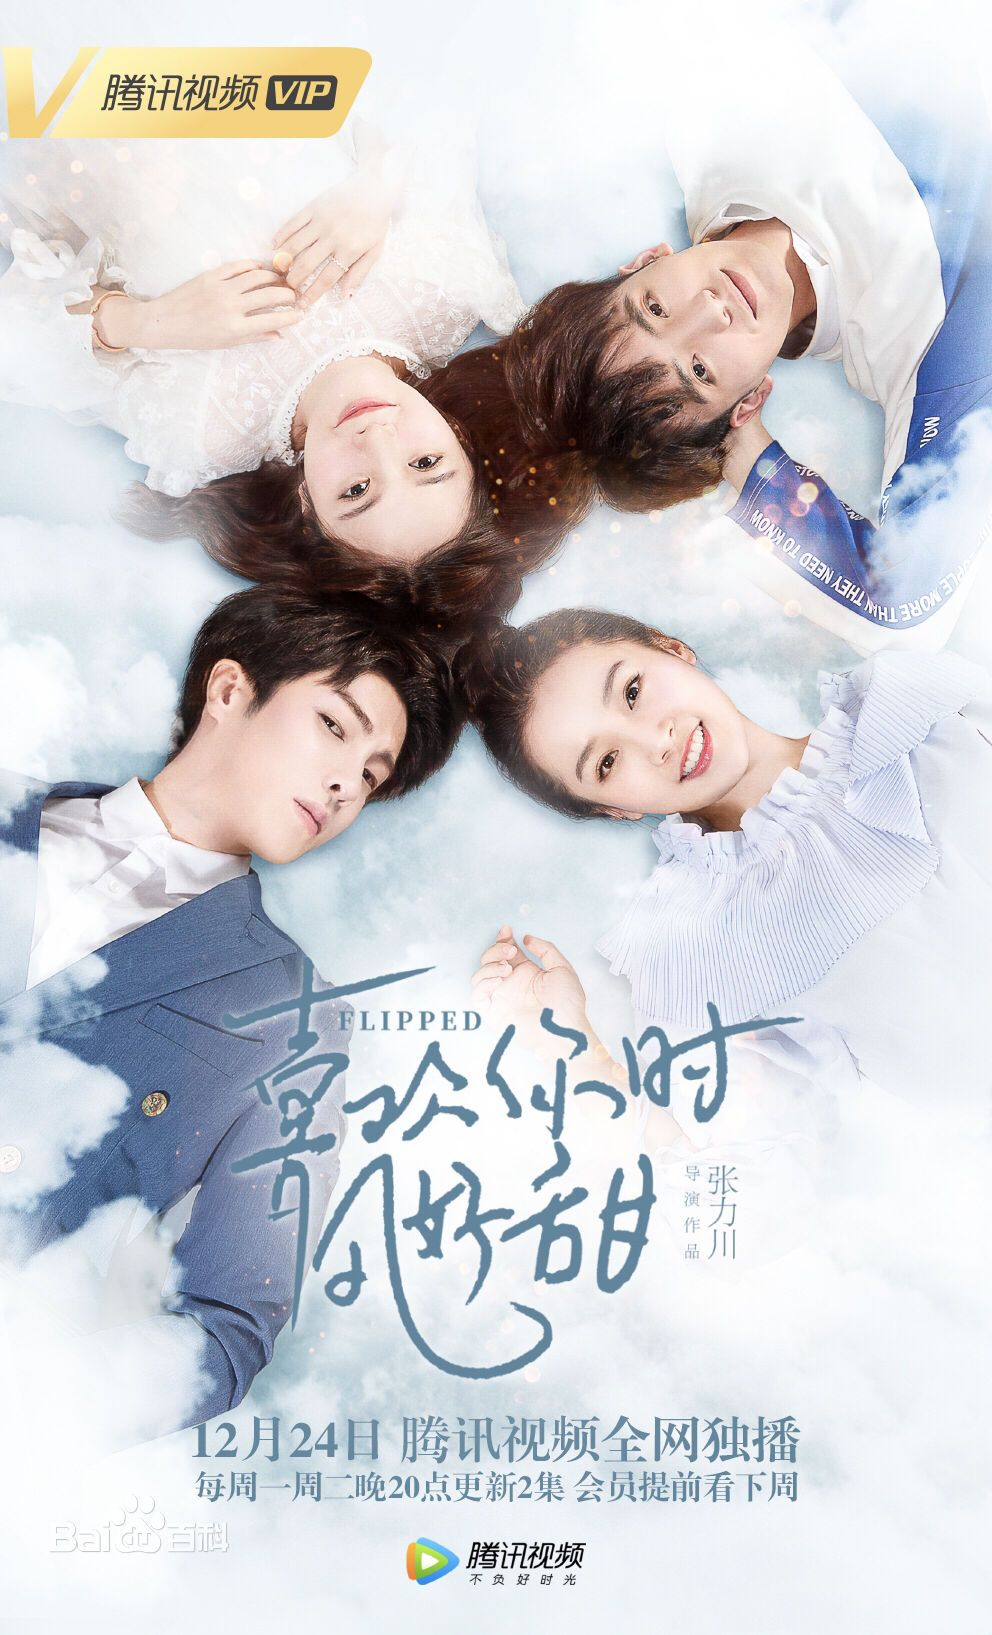 Flipped (2018) Chinese Drama 2019  Native Title: 喜欢你时风好甜 Also